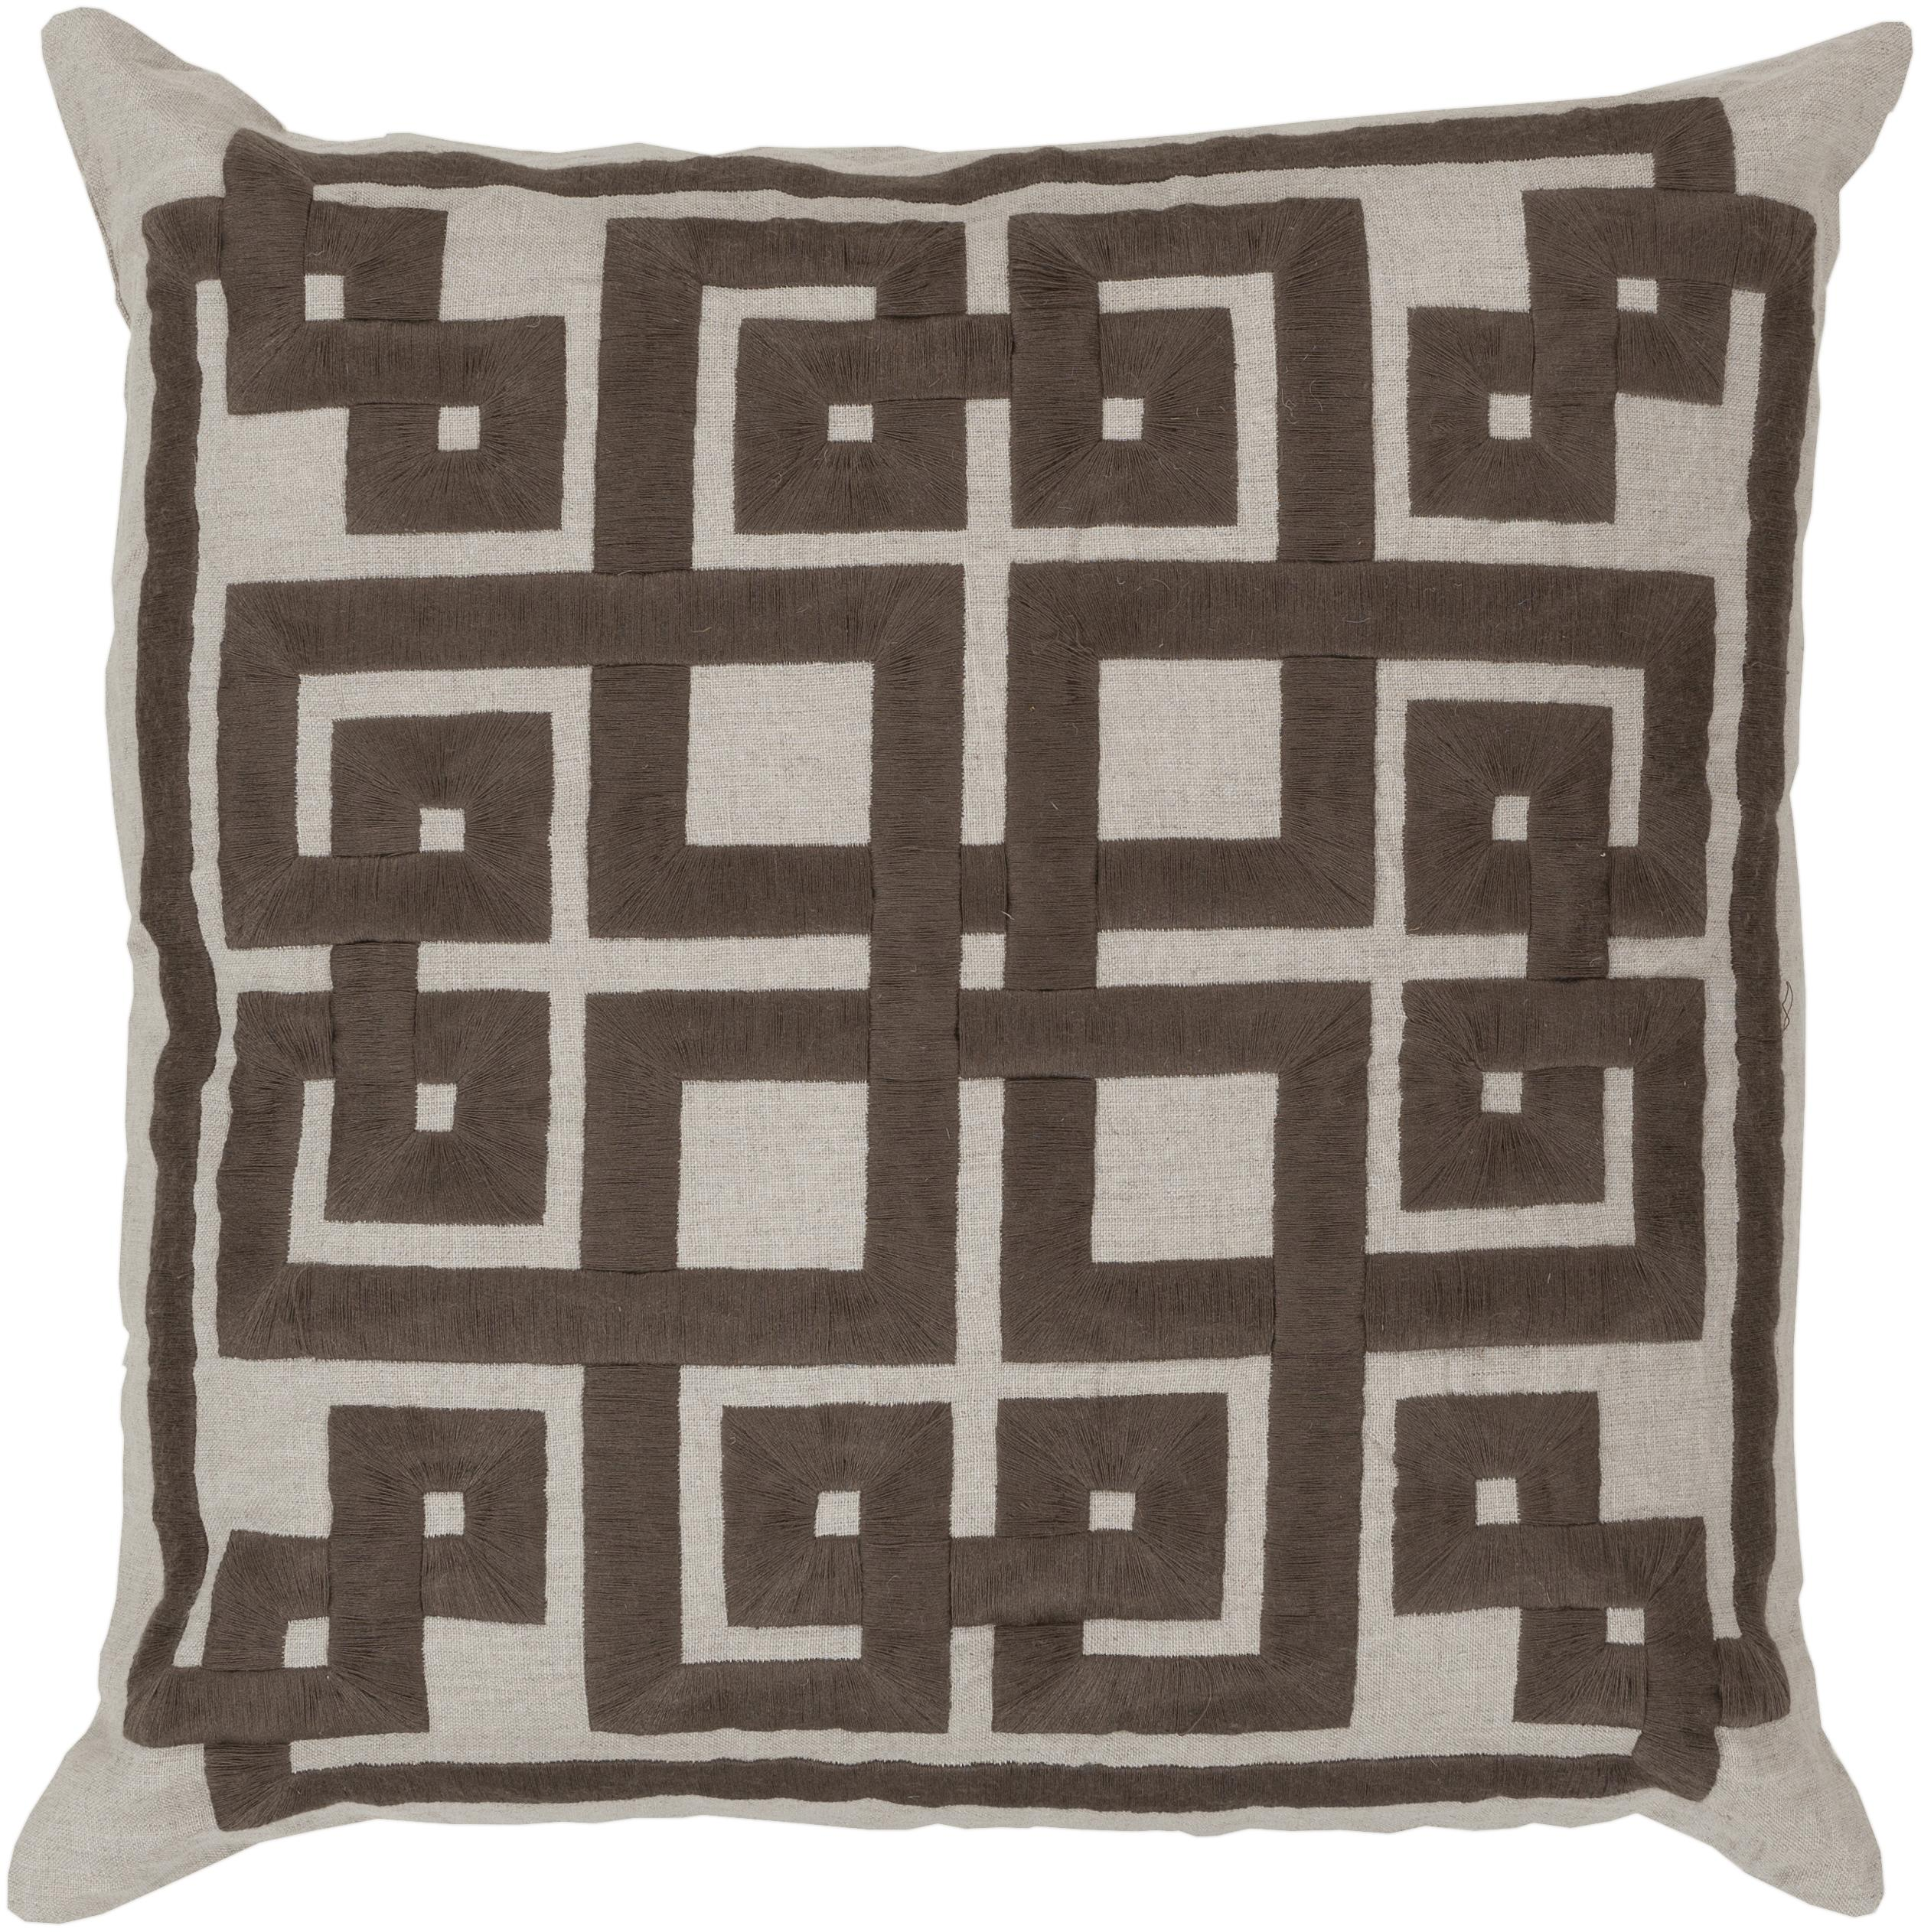 "Surya Rugs Pillows 20"" x 20"" Pillow - Item Number: LD001-2020P"